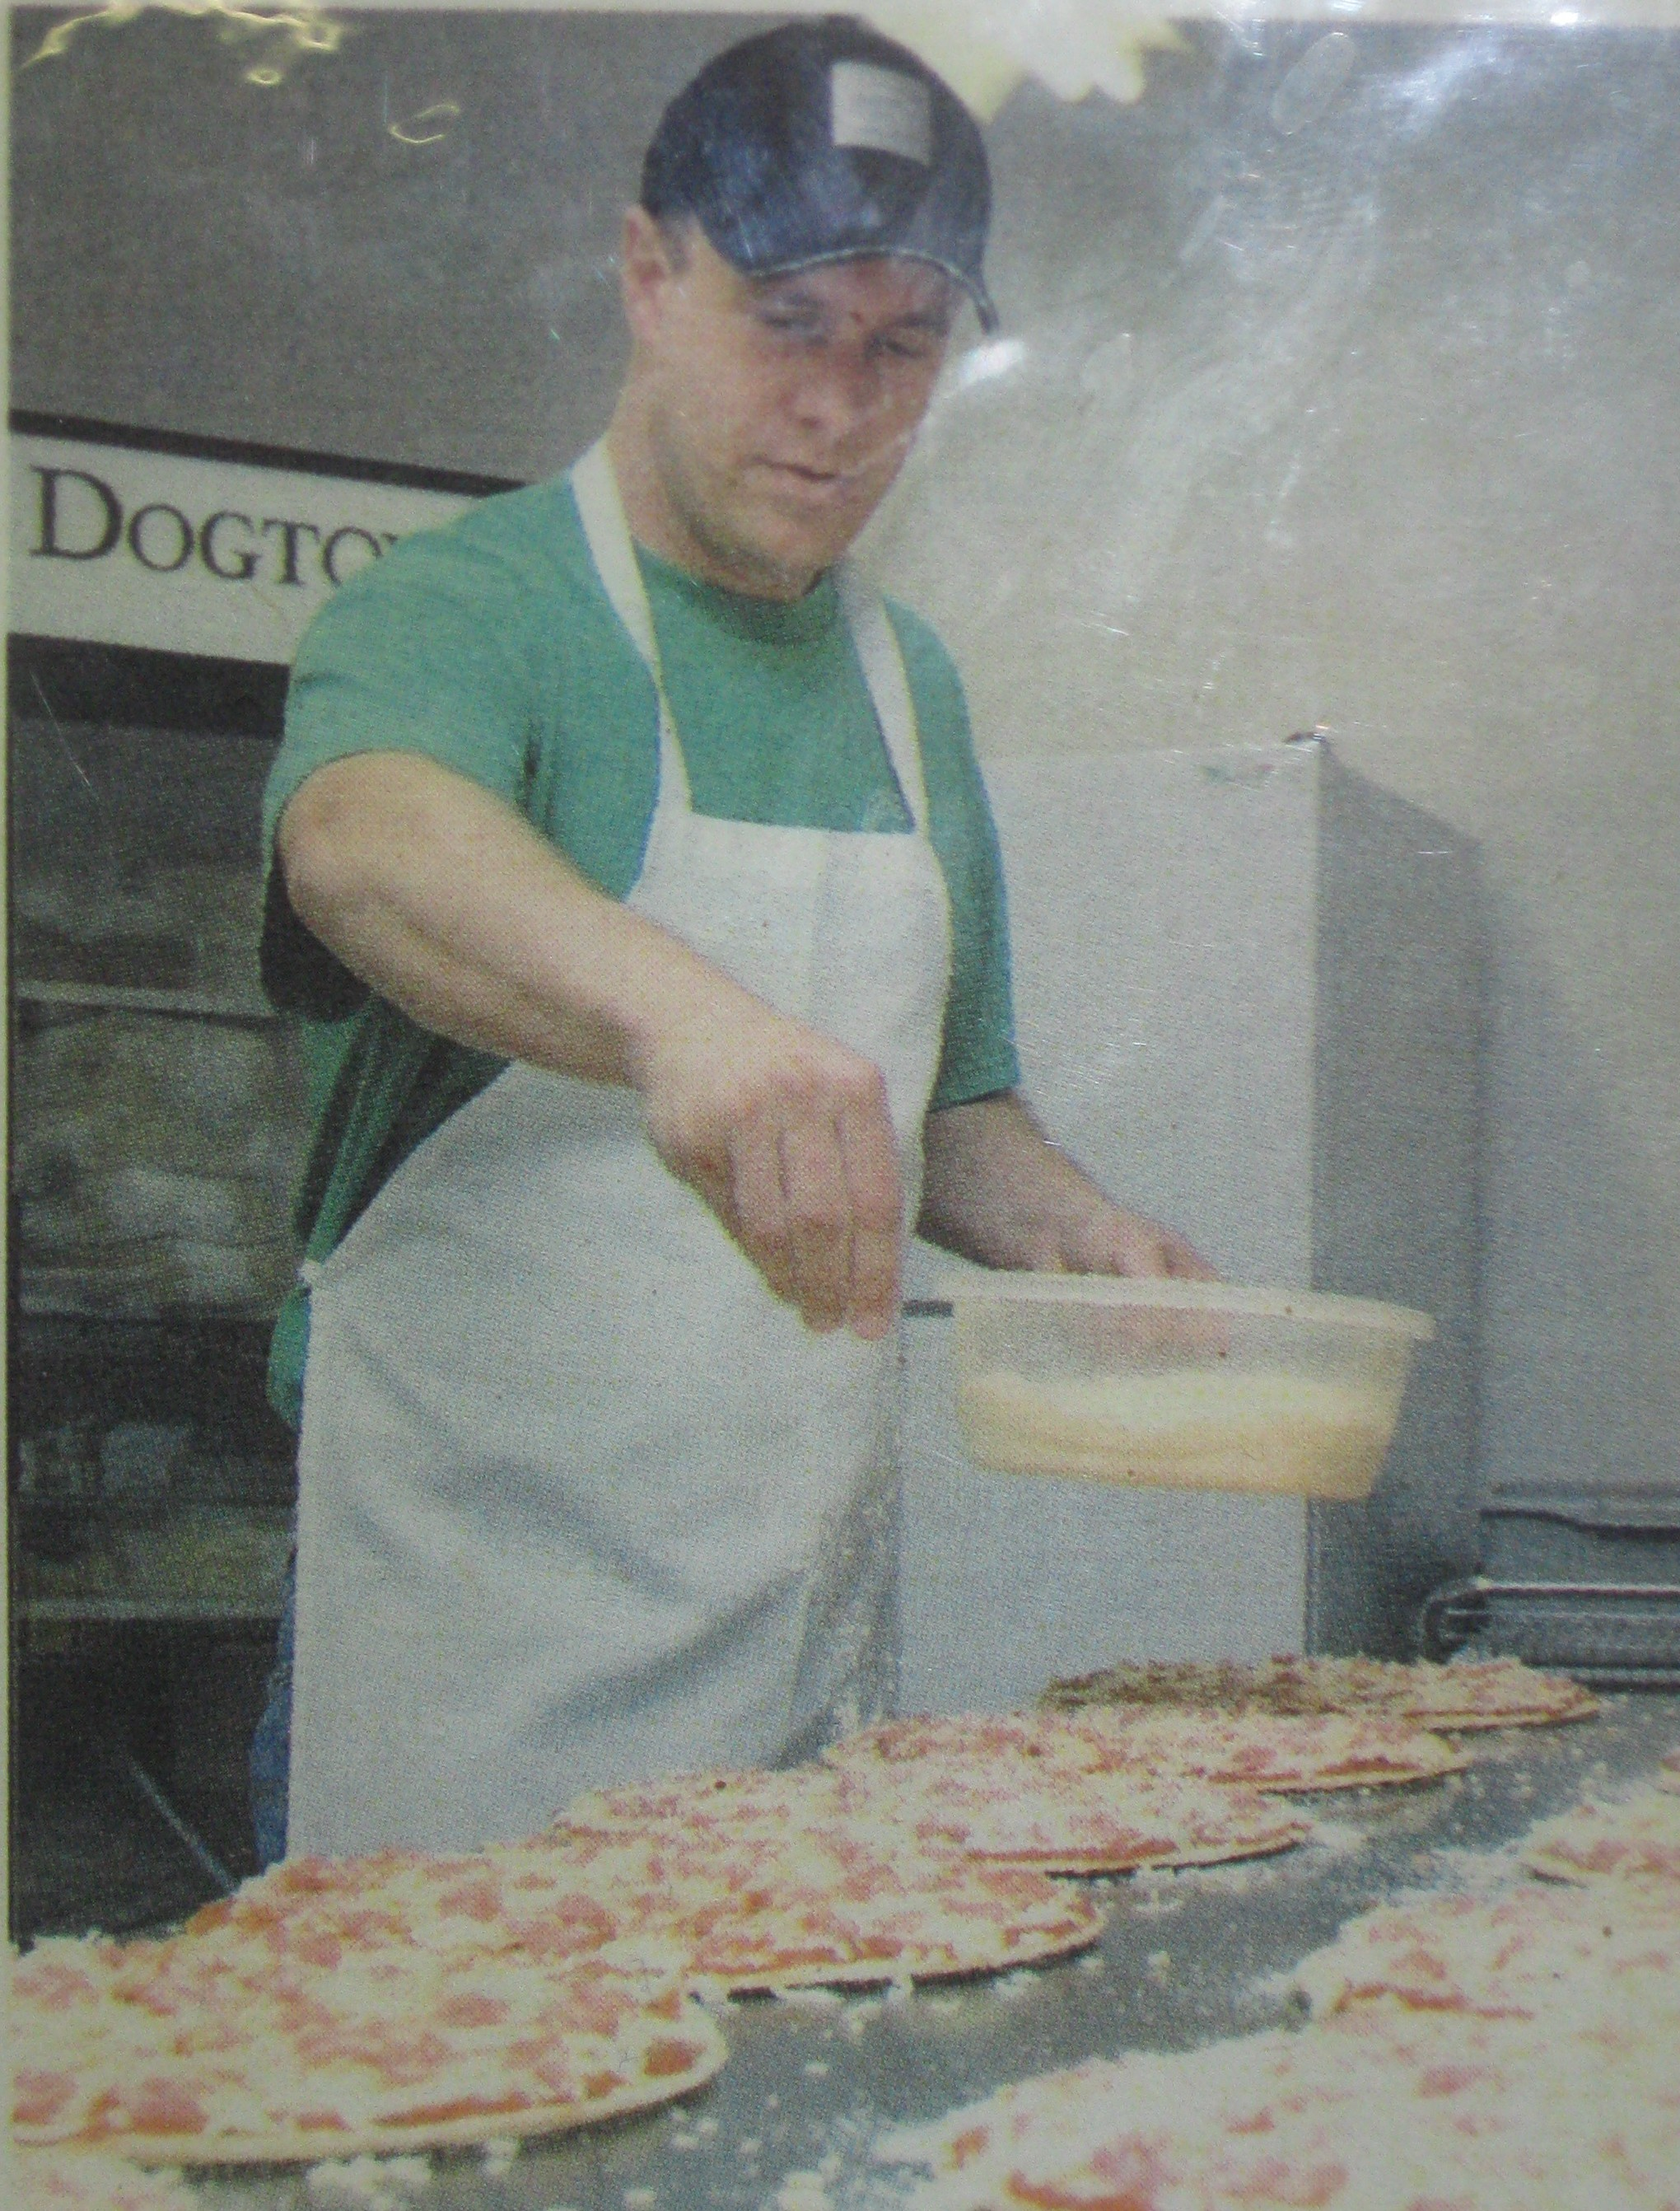 Rick Schaper Dogtown Pizza Celebrates 9 Years